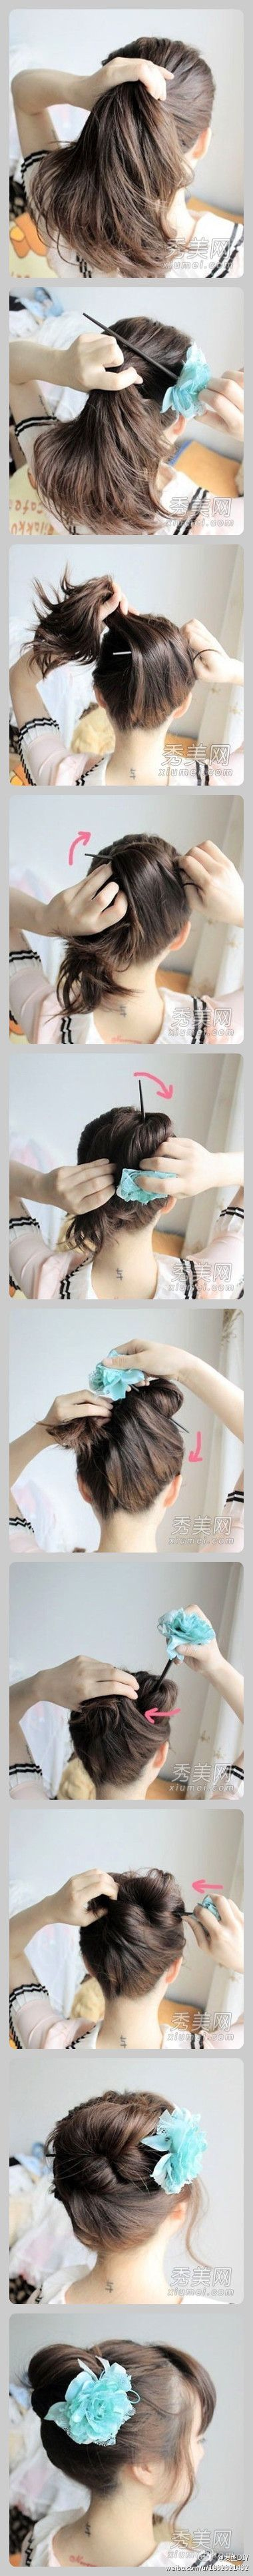 Cute: Hairstyles, Long Hair, Hair Do, Hair Style, Flowers, Hair Sticks, Updo, Hair Buns, Hairstick